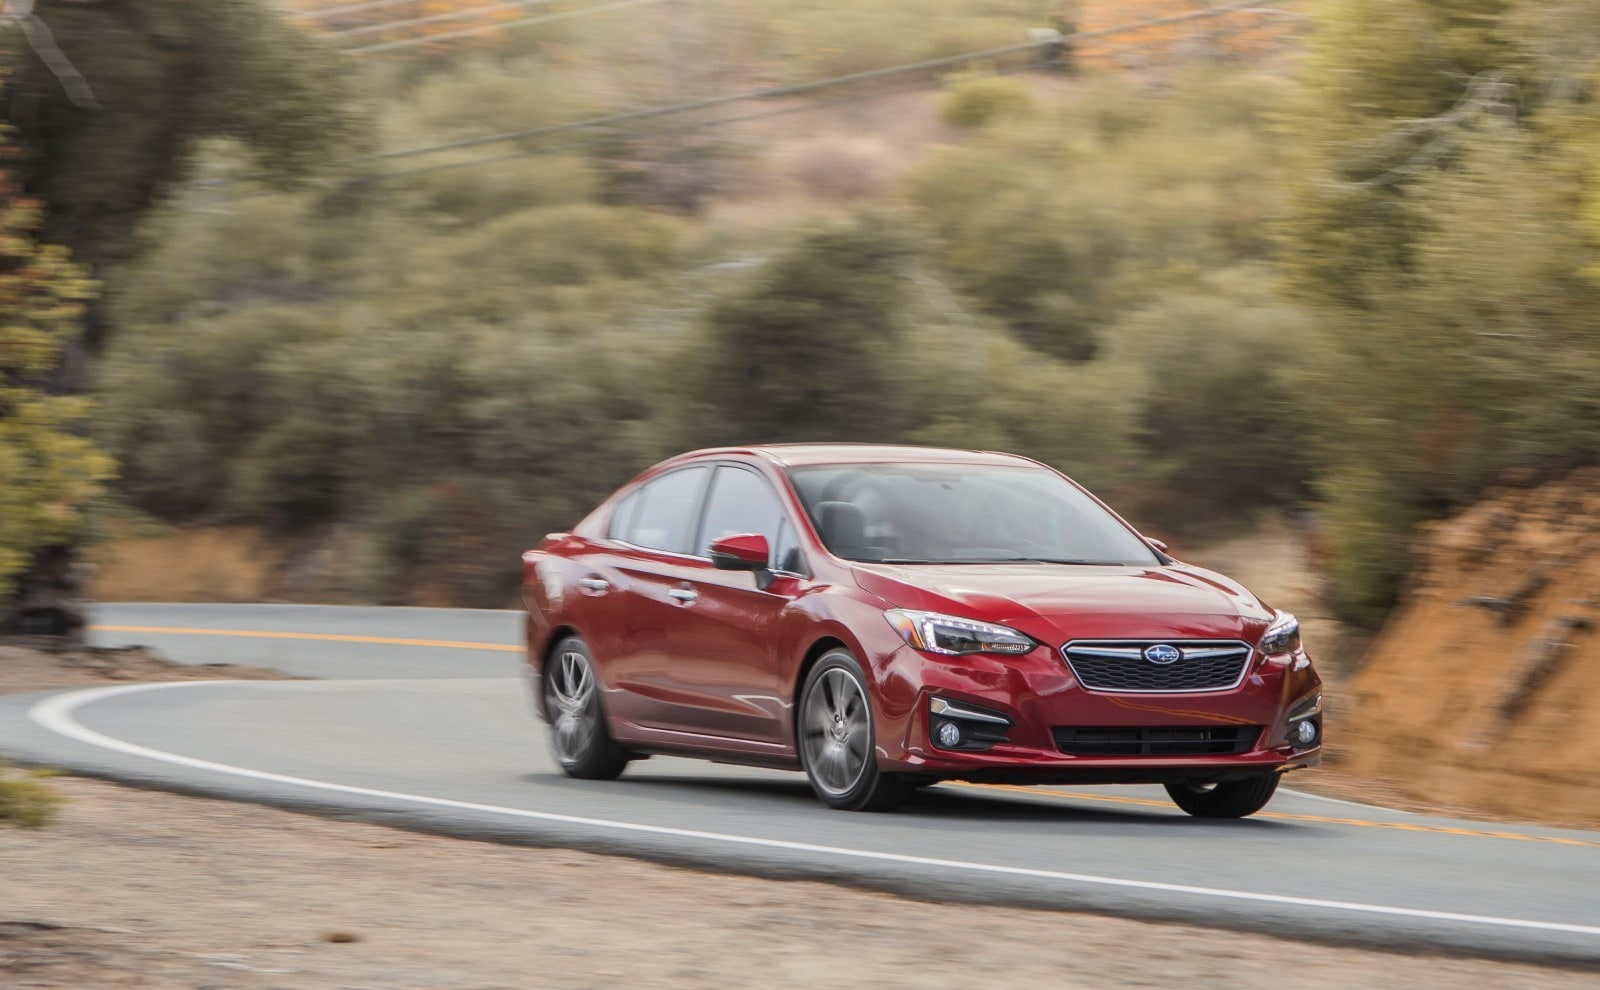 2018 Subaru Impreza - One of The Cool Cars Named by KBB | Greeley ...